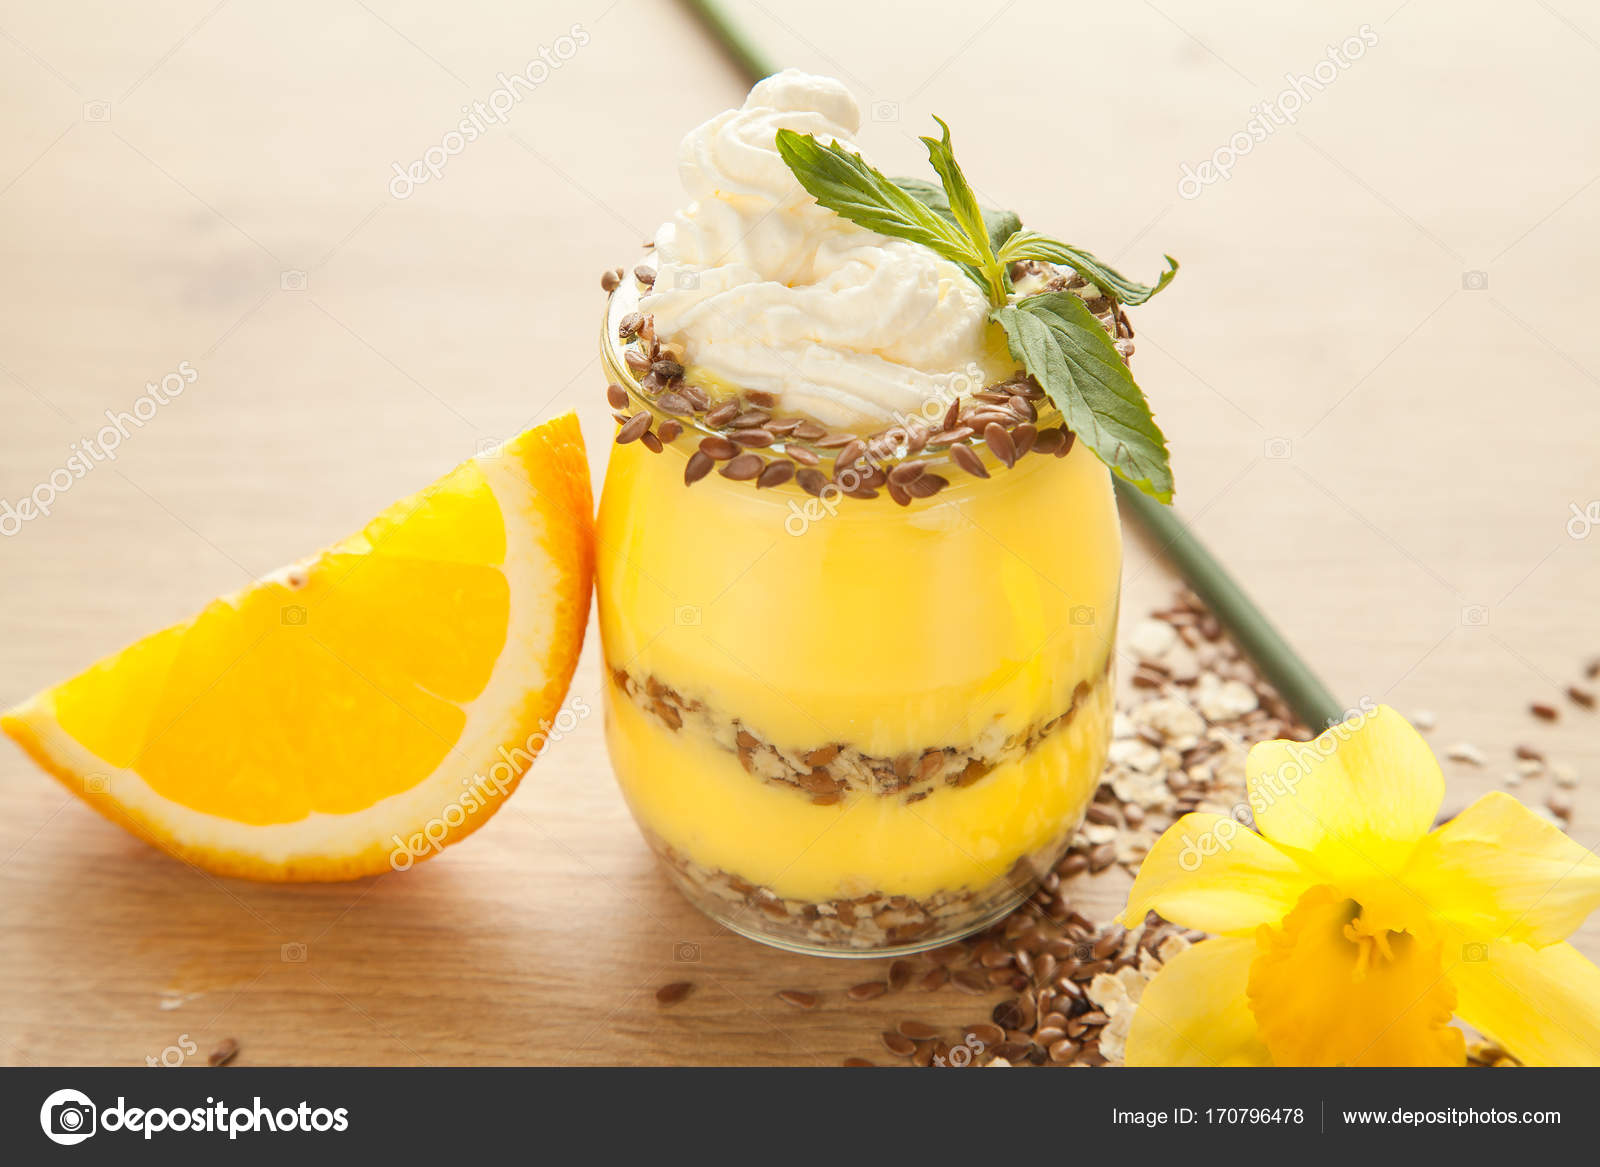 Diat Orange Niedrigen Zucker Pudding Stockfoto C Dturphoto 170796478